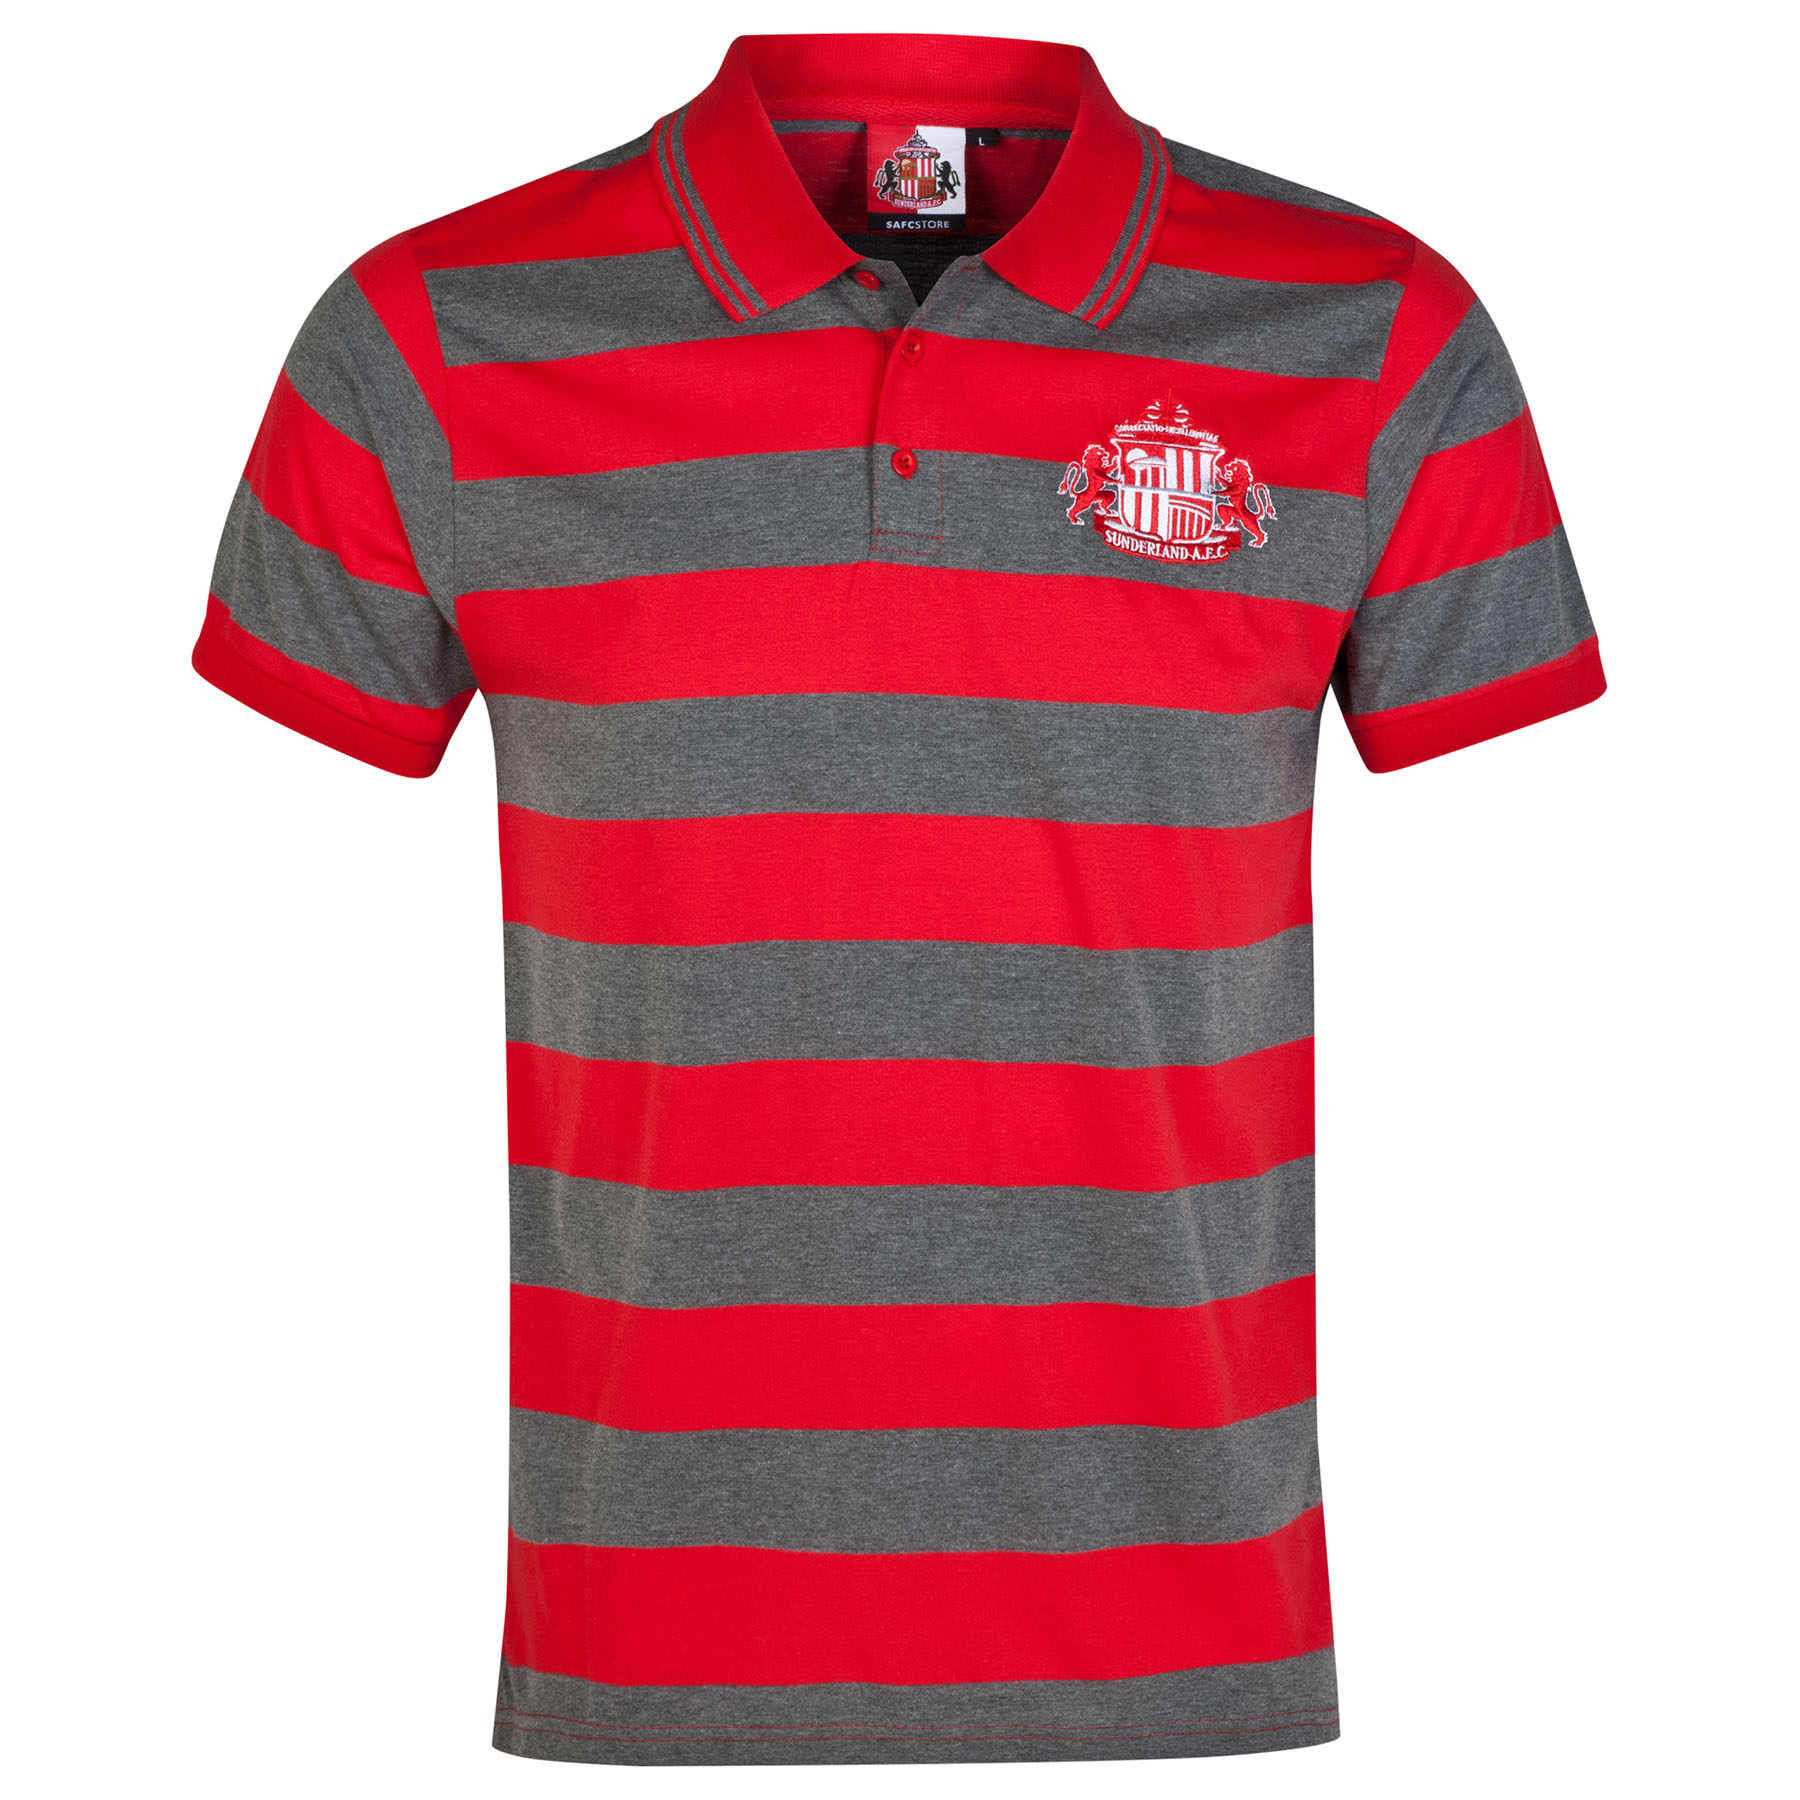 Sunderland Essential Polo Shirt - Red/Vintage Marl -Infant Boys